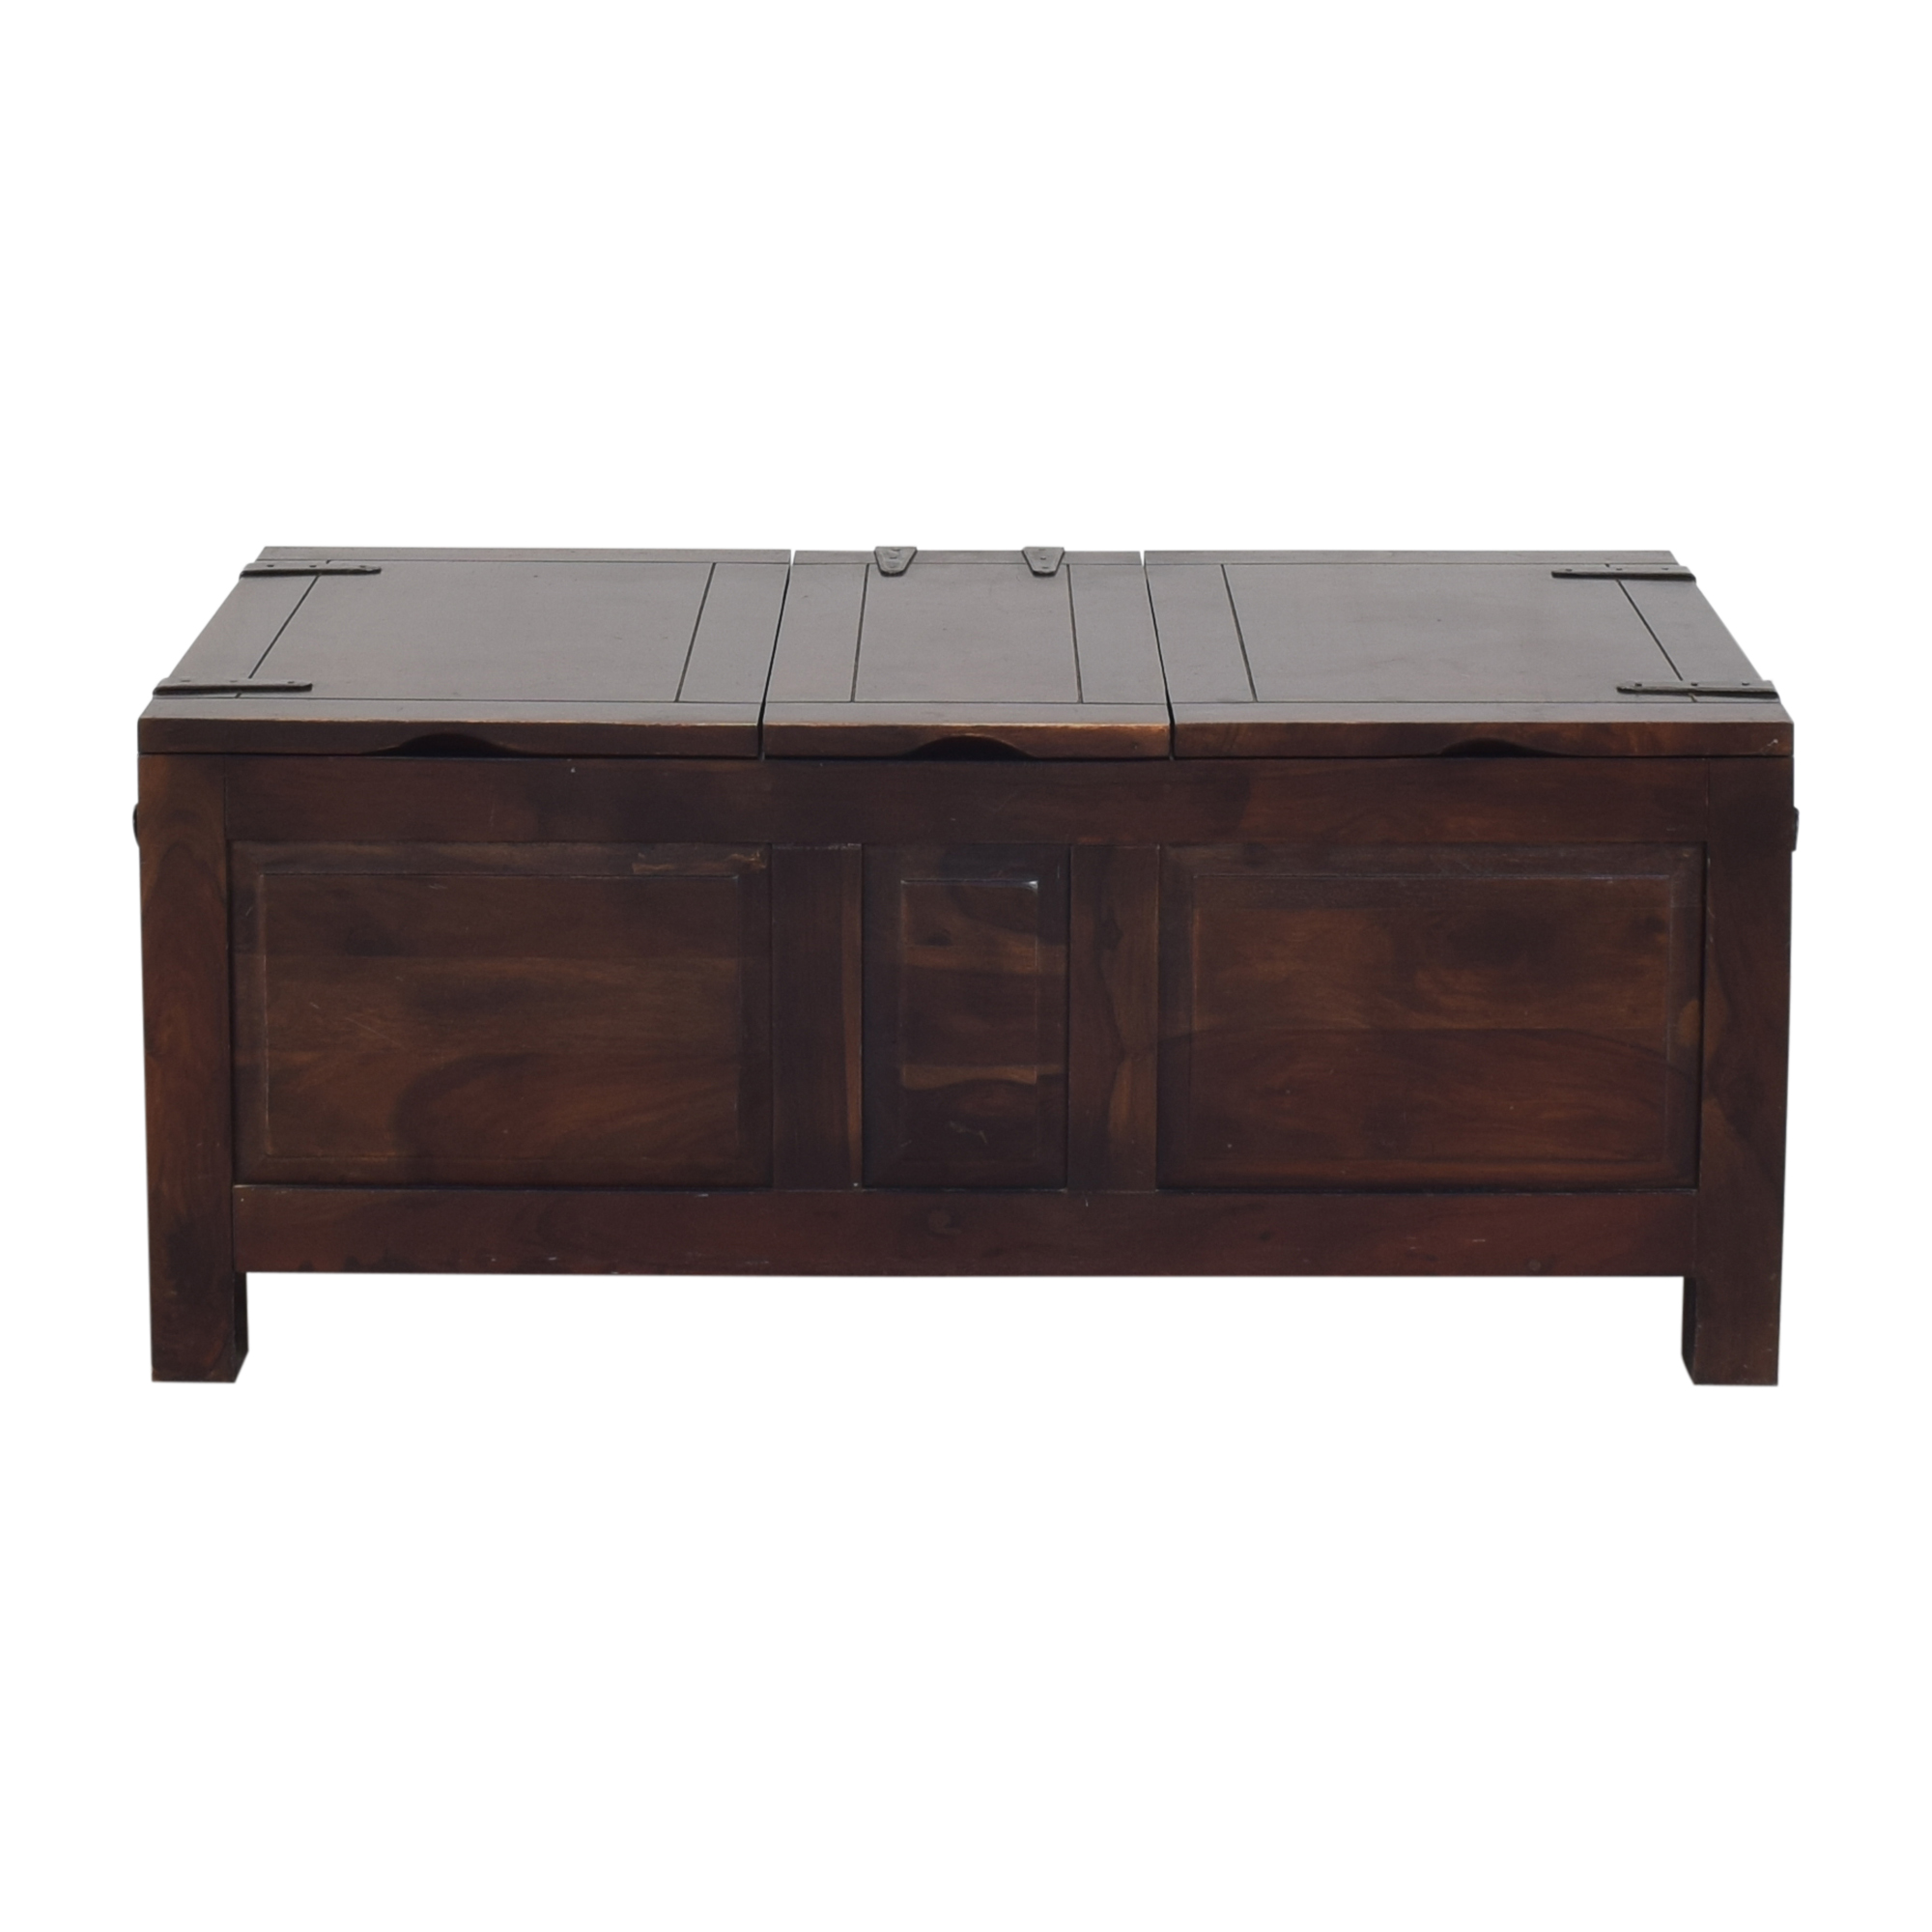 Crate & Barrel Crate & Barrel Hunter II Trunk Storage Coffee Table